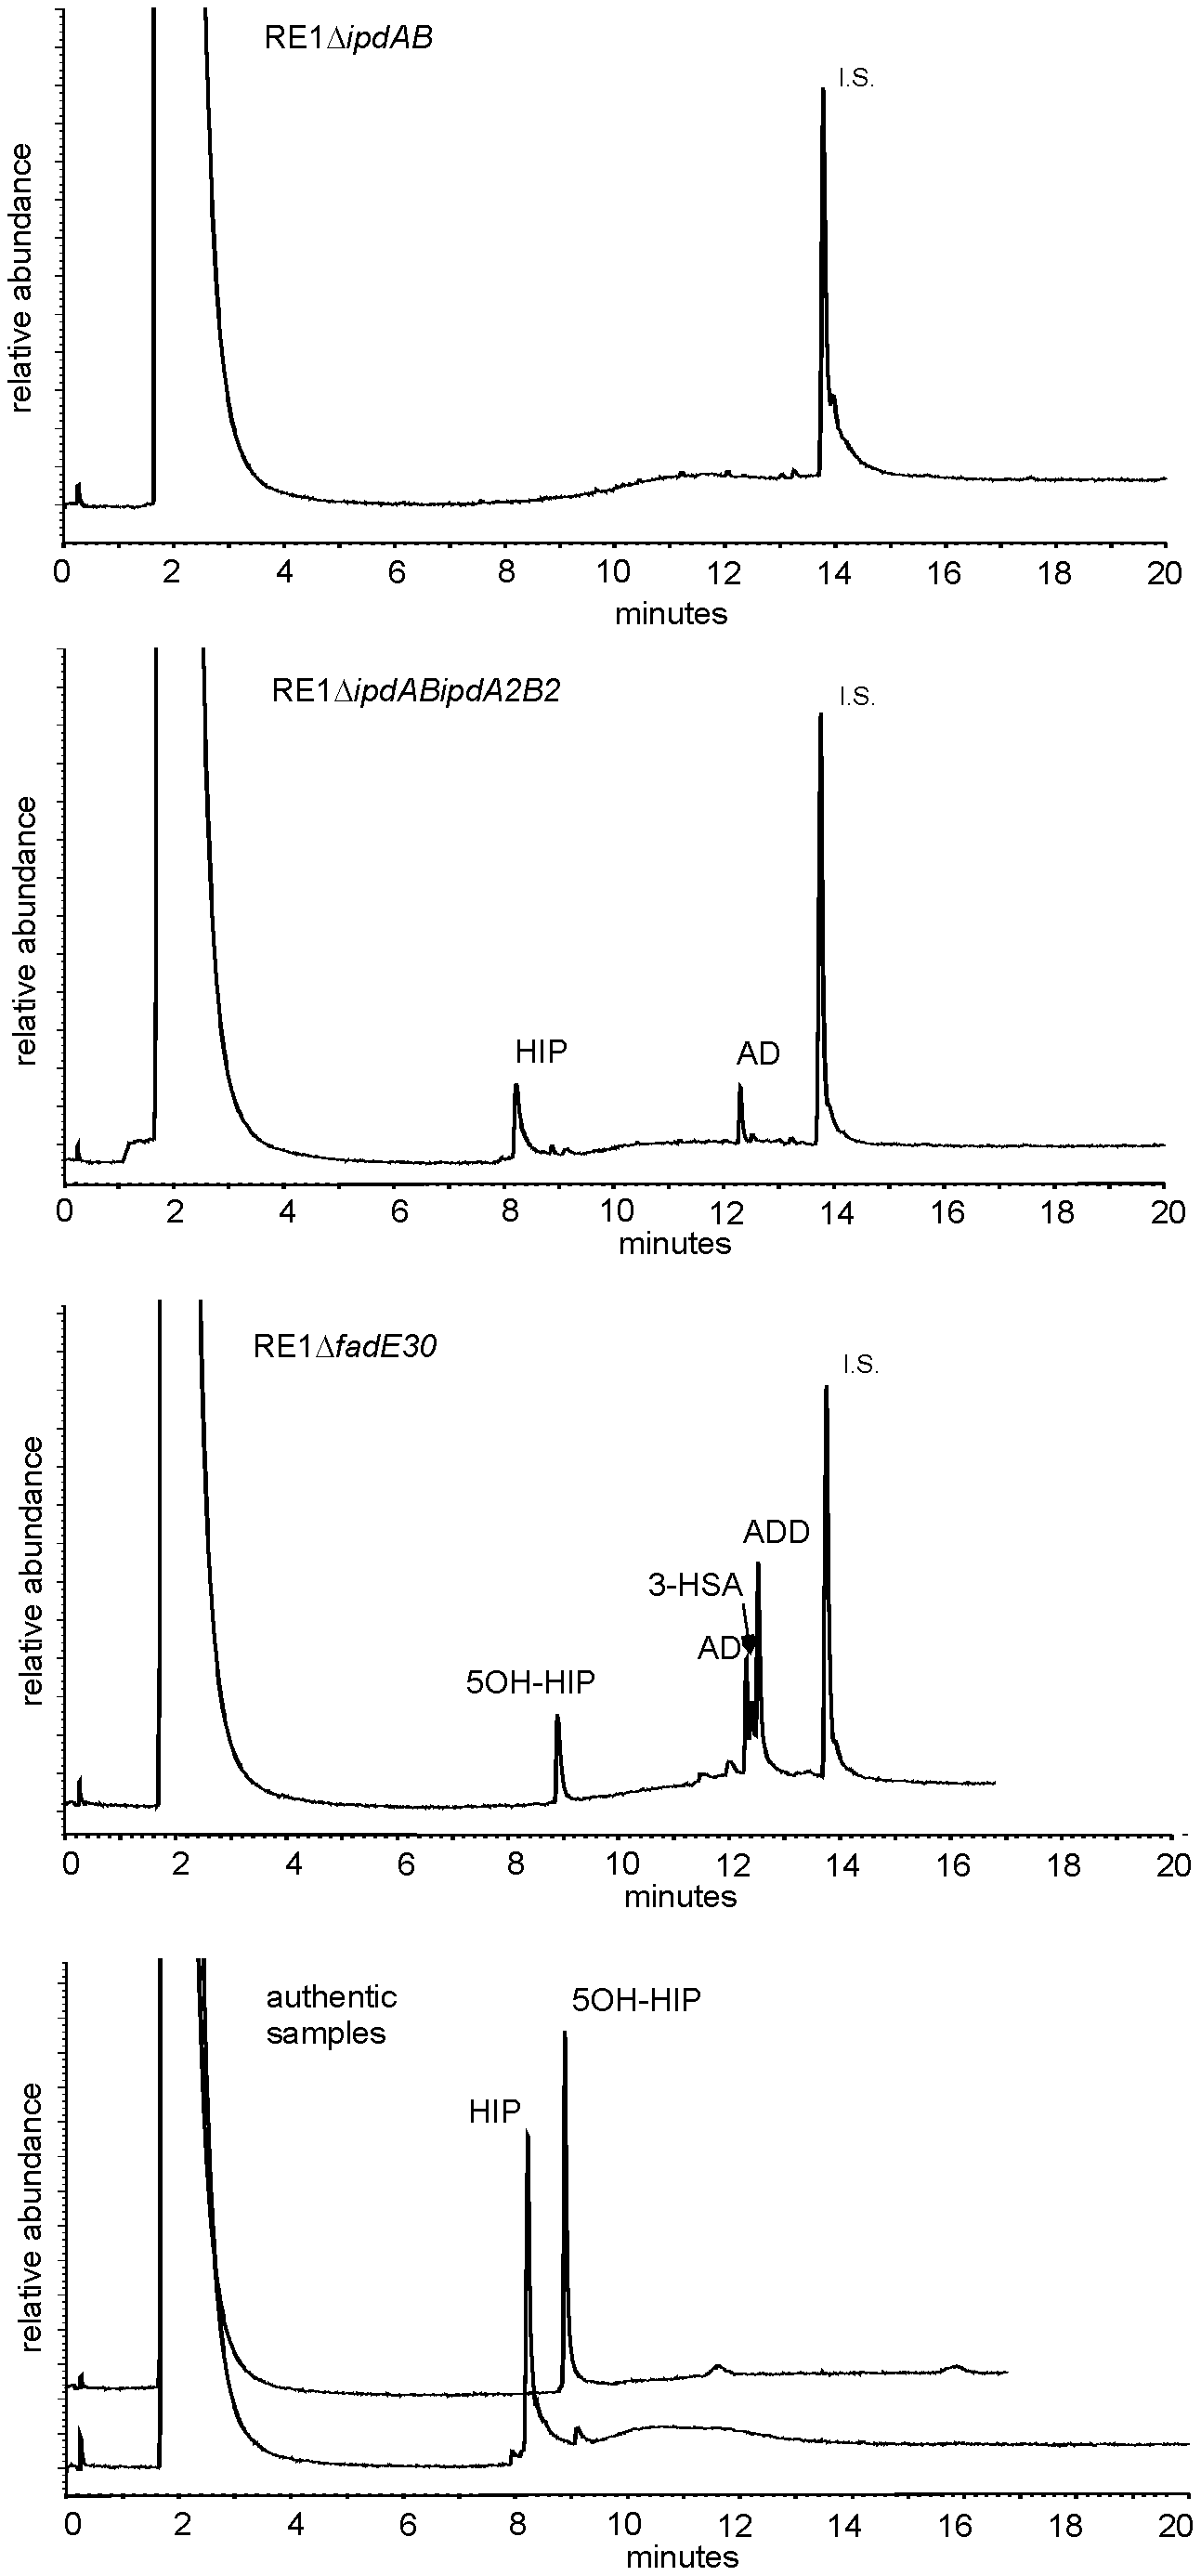 Gas chromatography profiles showing the formation of methylhexahydroindanone propionate intermediates during whole cell biotransformations of 4-androstene-3,17-dione (AD) by mutant strains of <i>R. equi</i> RE1 at T=120 hours.